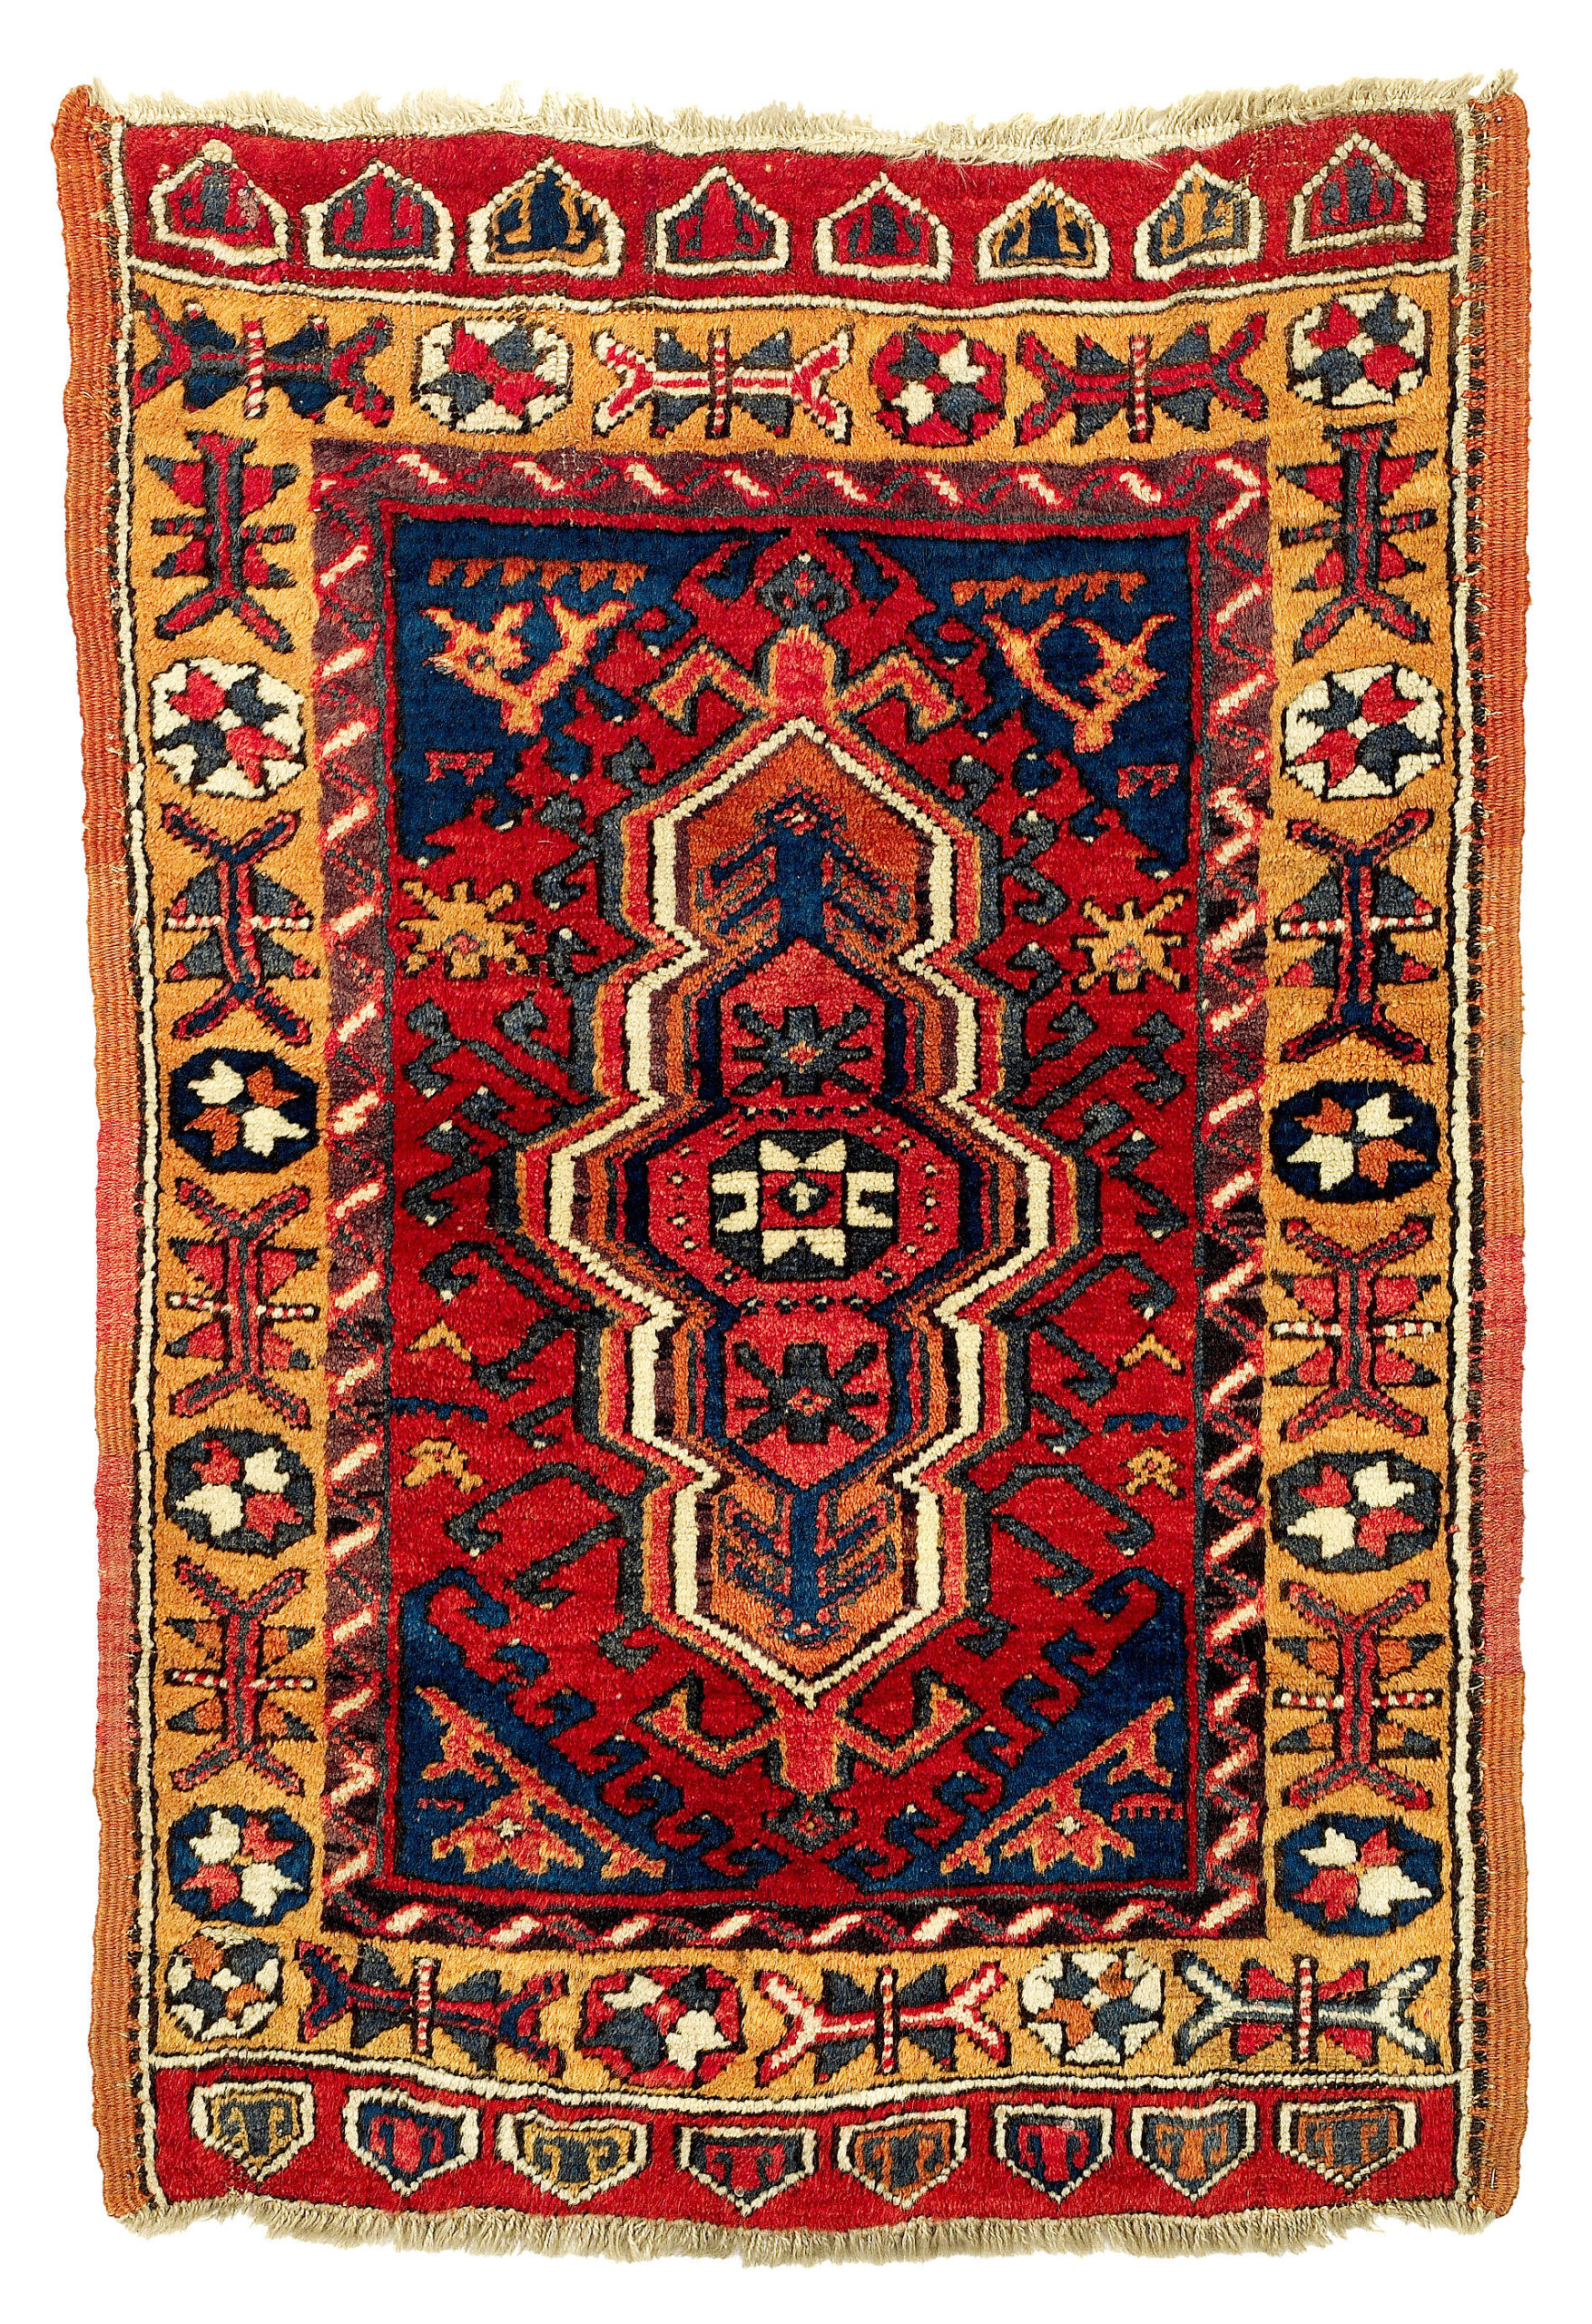 Konya yastik, Crnteal Turkey, 19th century